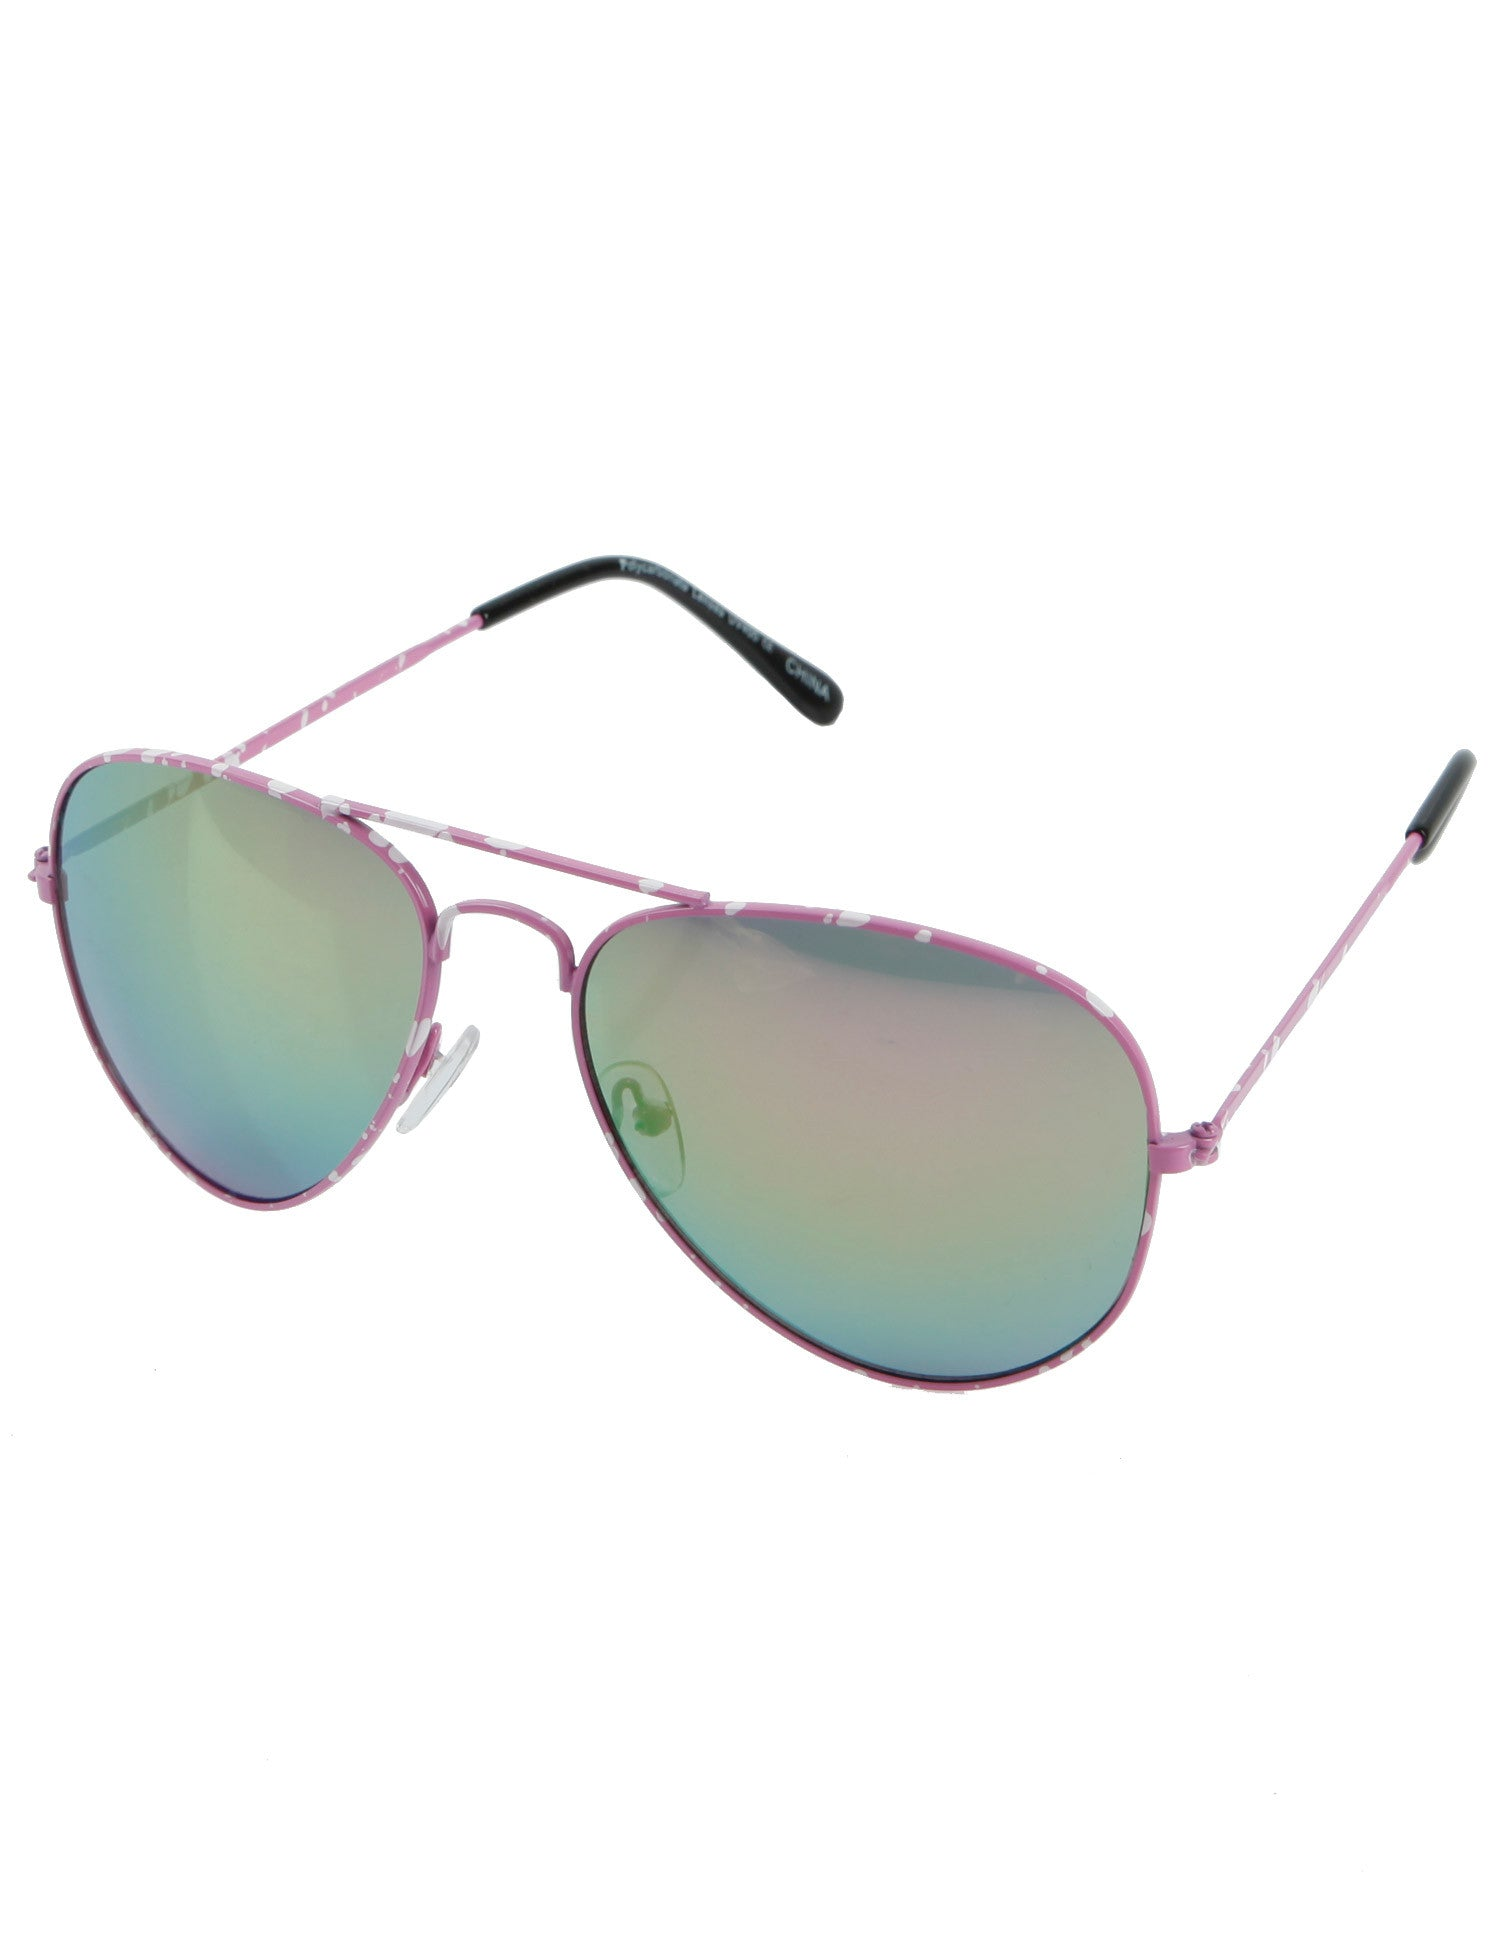 Image of Sunglasses F1504 Pink